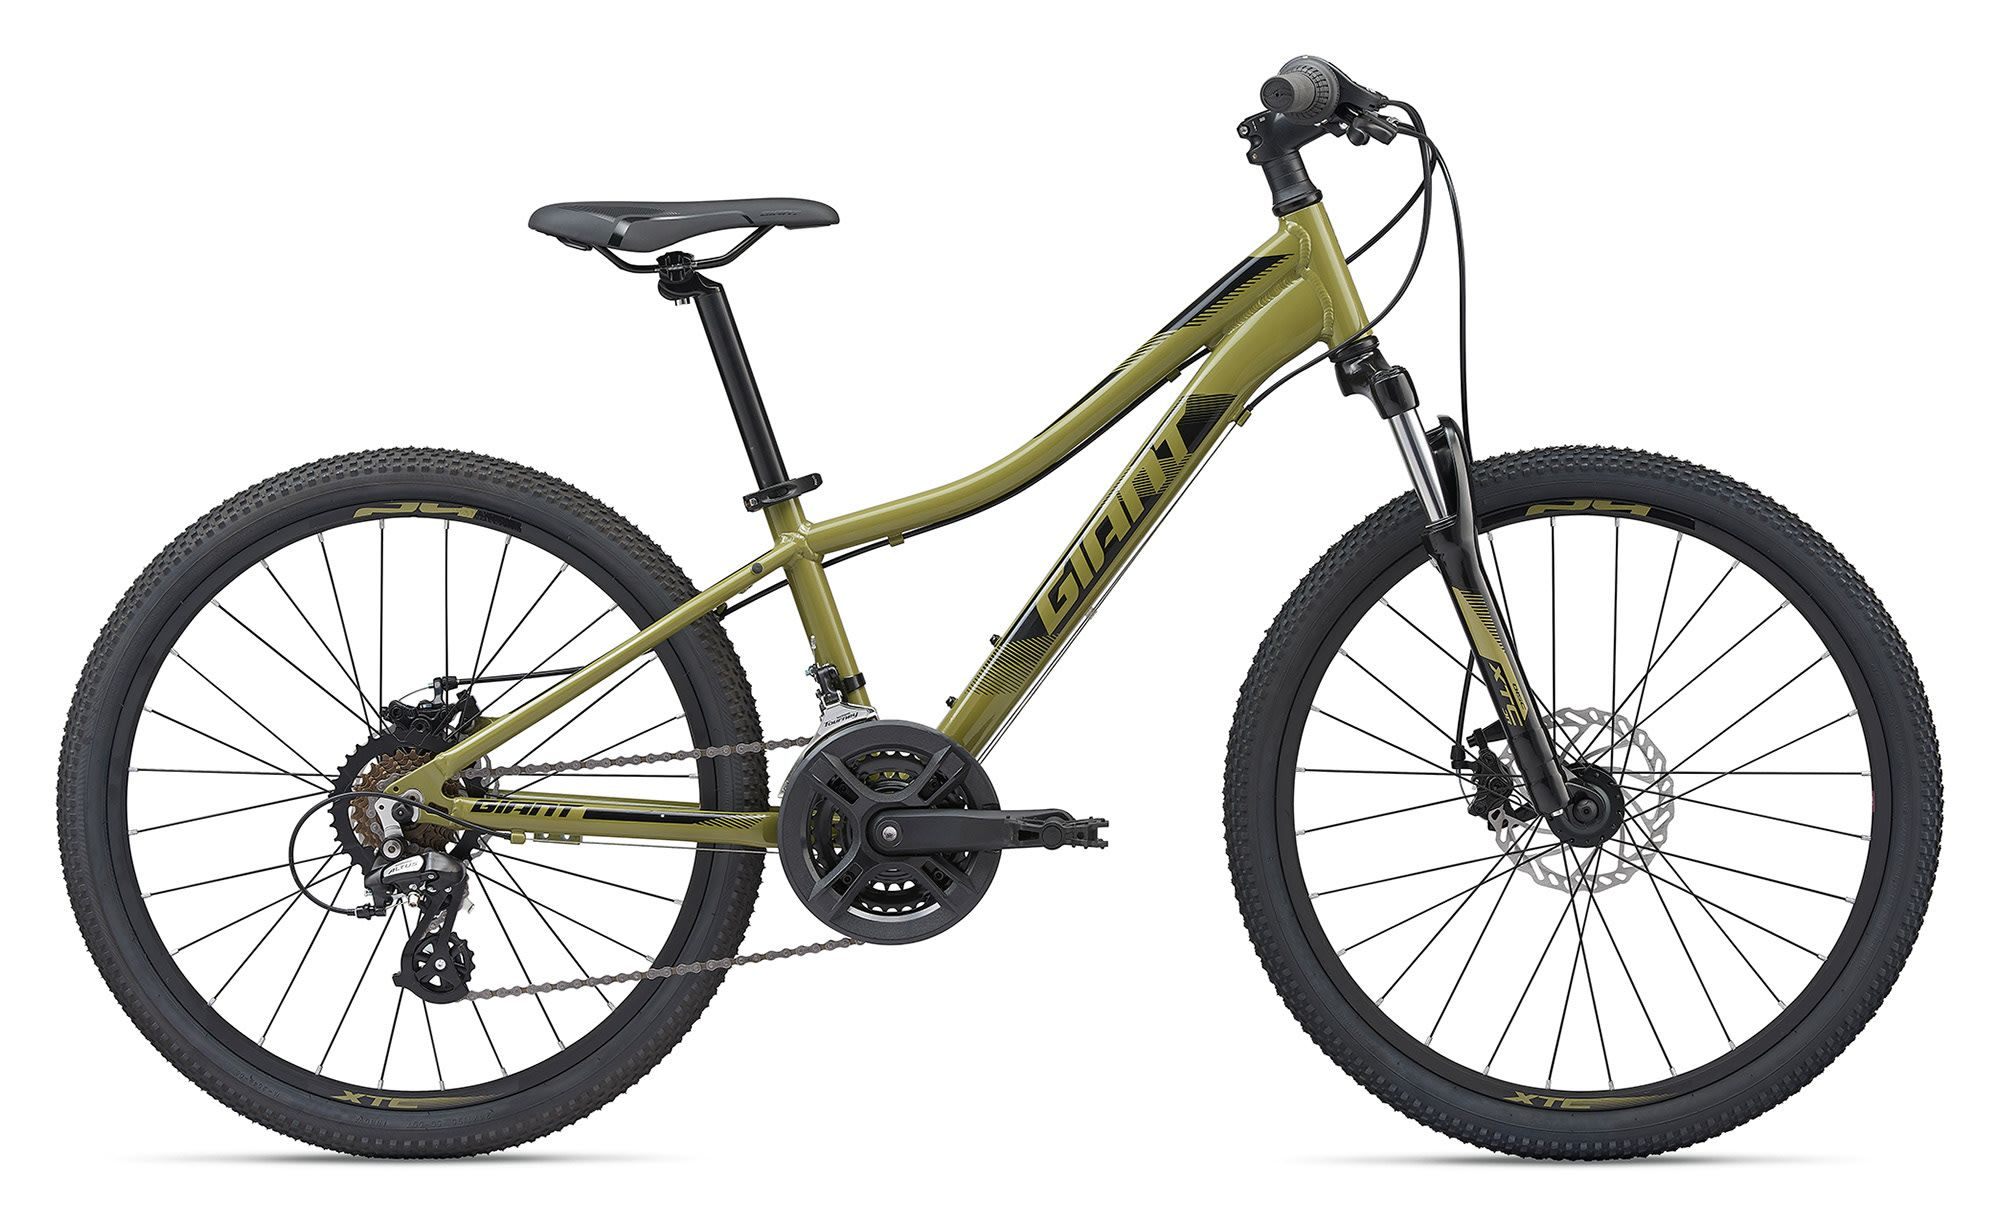 Giant Xtc Jr Disc 24 Kids Mountain Bike 2020 | City-cykler